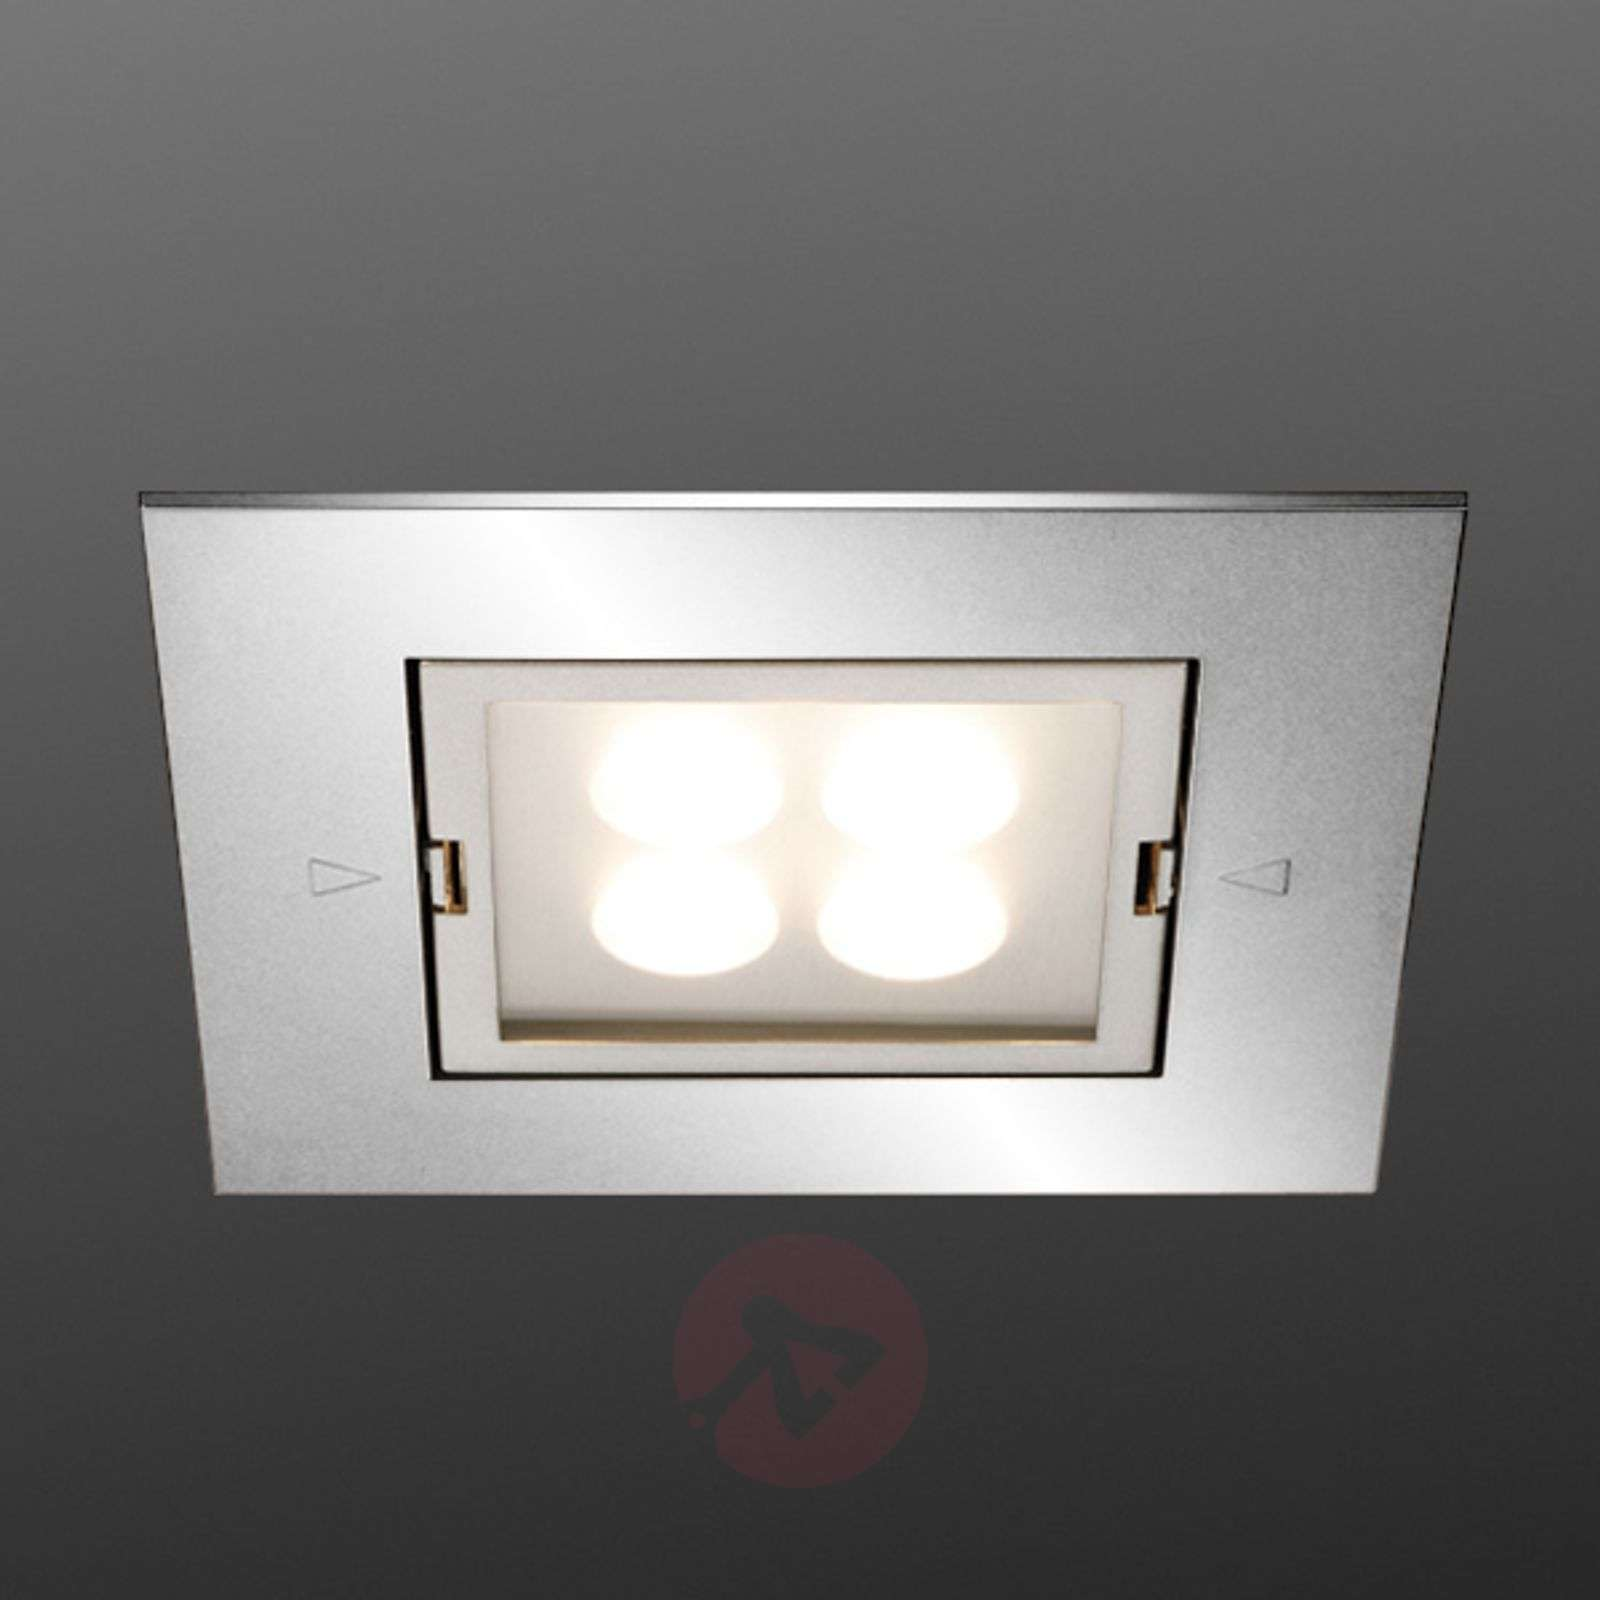 ARF-Q LED recessed light 4 x 1 watts, ss-4514069-01